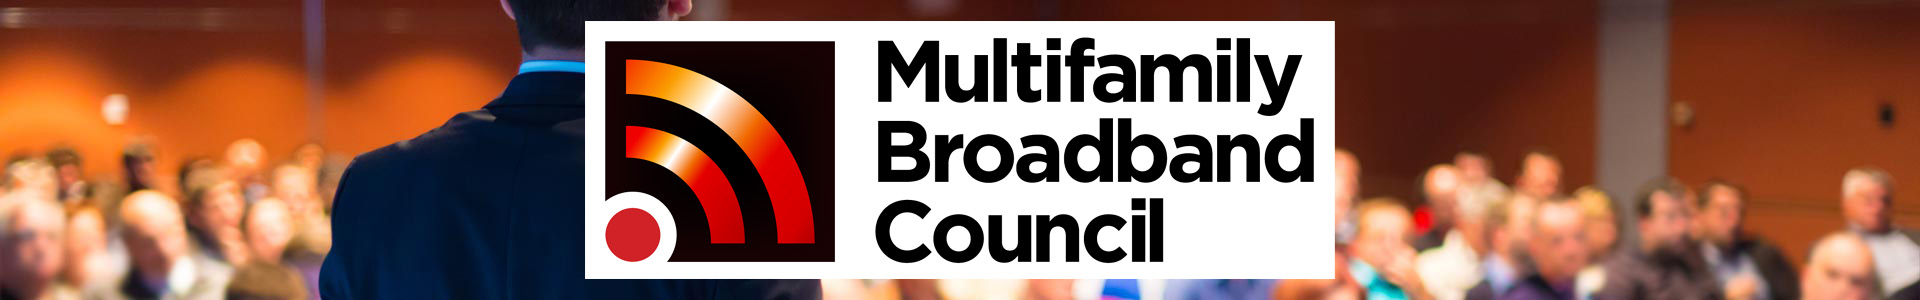 2017 Multifamily Broadband Council Conference